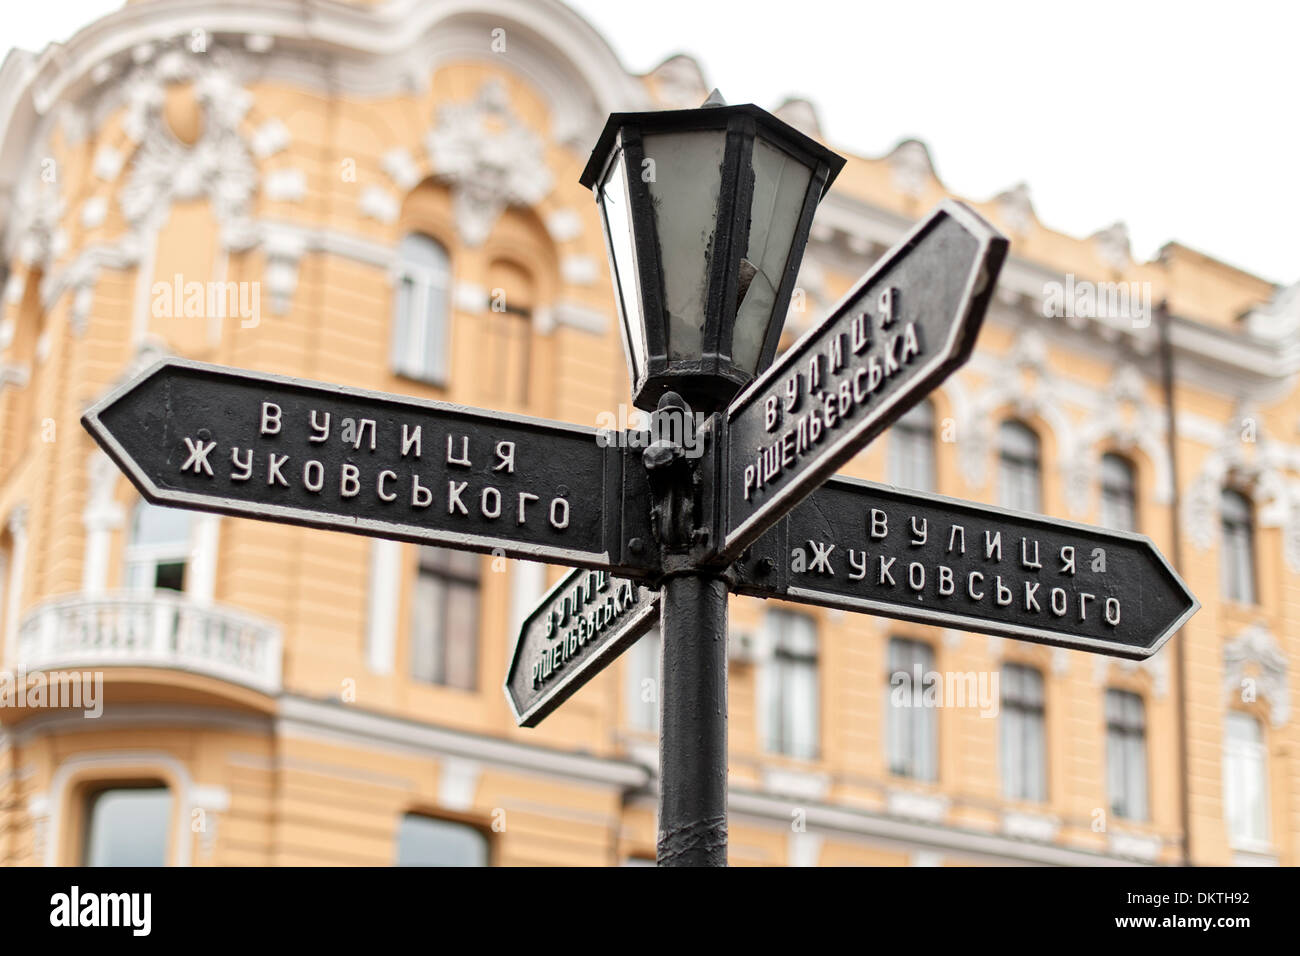 Street sign in Odessa, Ukraine. - Stock Image